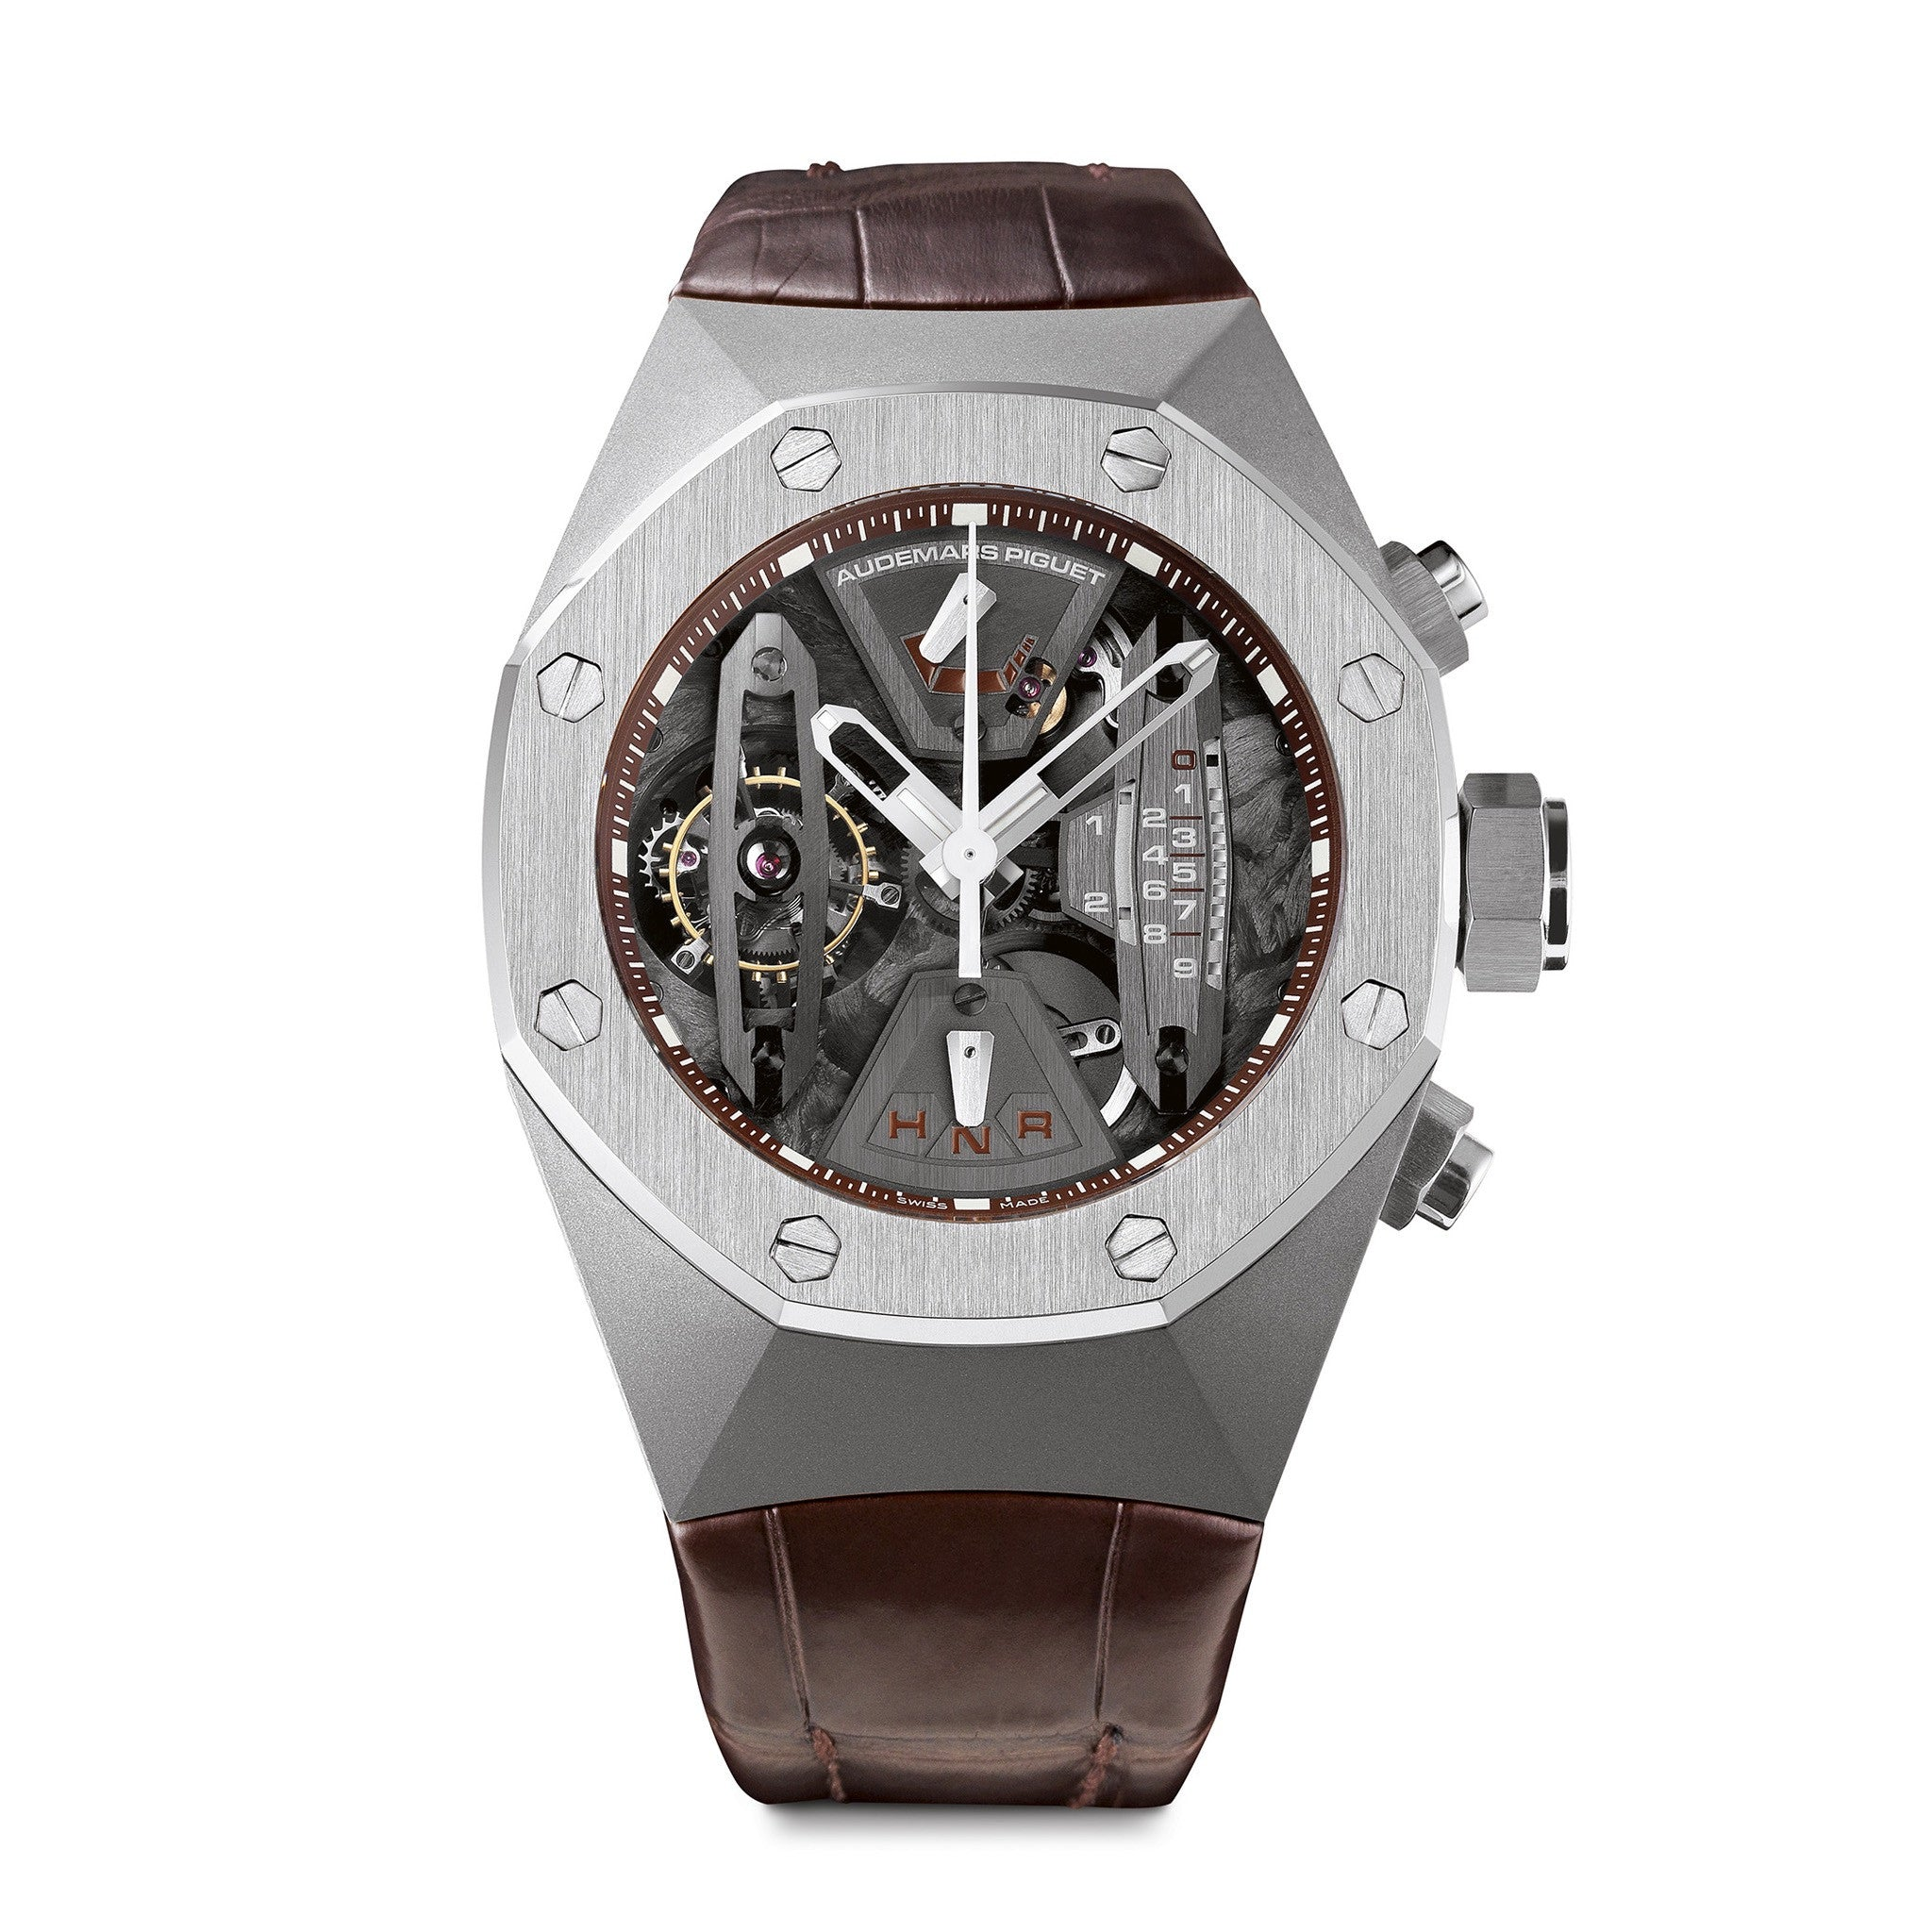 Royal Oak Concept Tourbillon Chronograph 26223TI.OO.D099CR.01 - Audemars Piguet